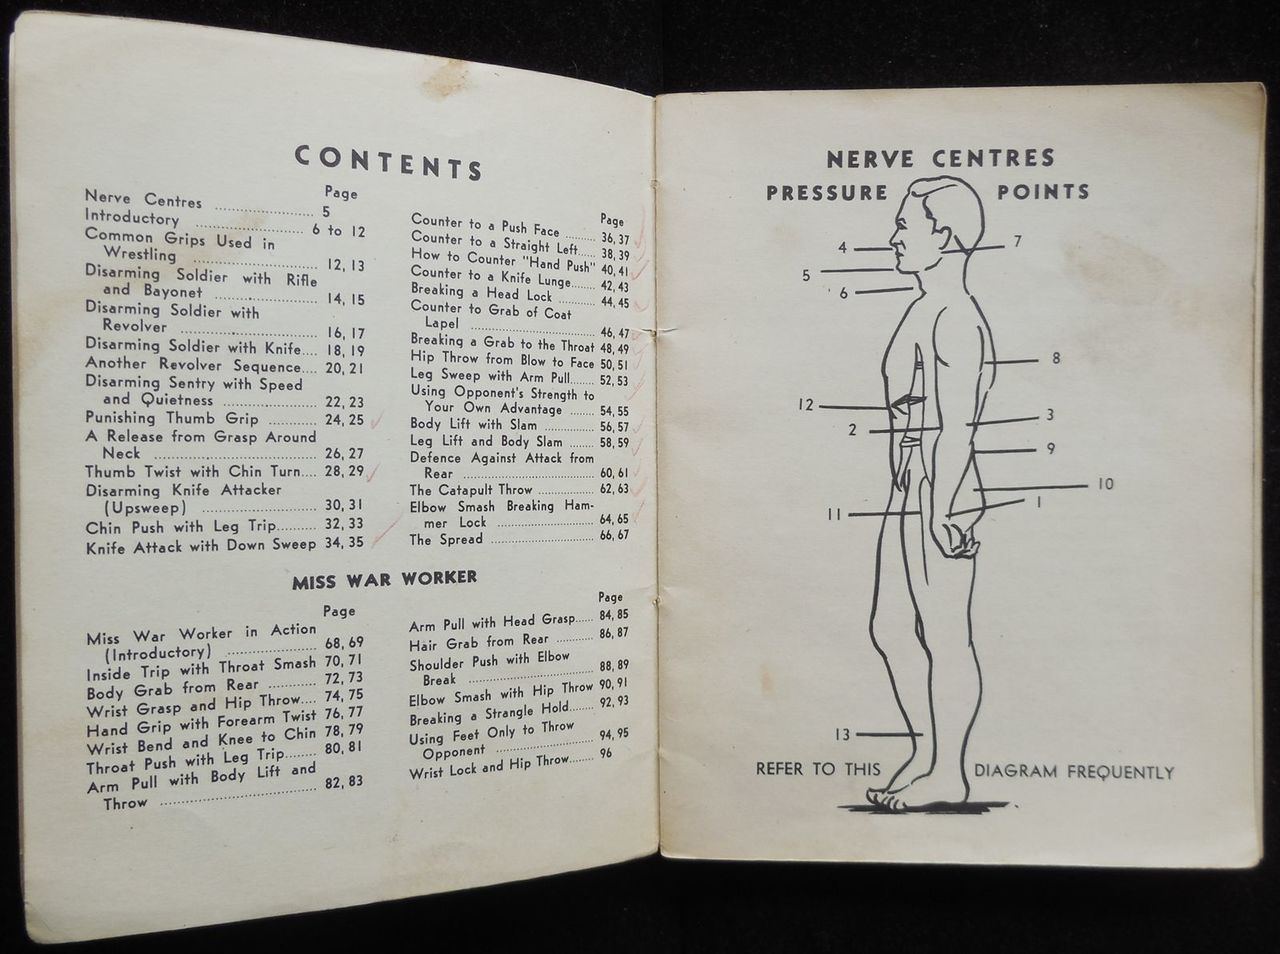 COMBATO: THE ART OF SELF-DEFENCE, by Corporal Bill Underwood - 1943